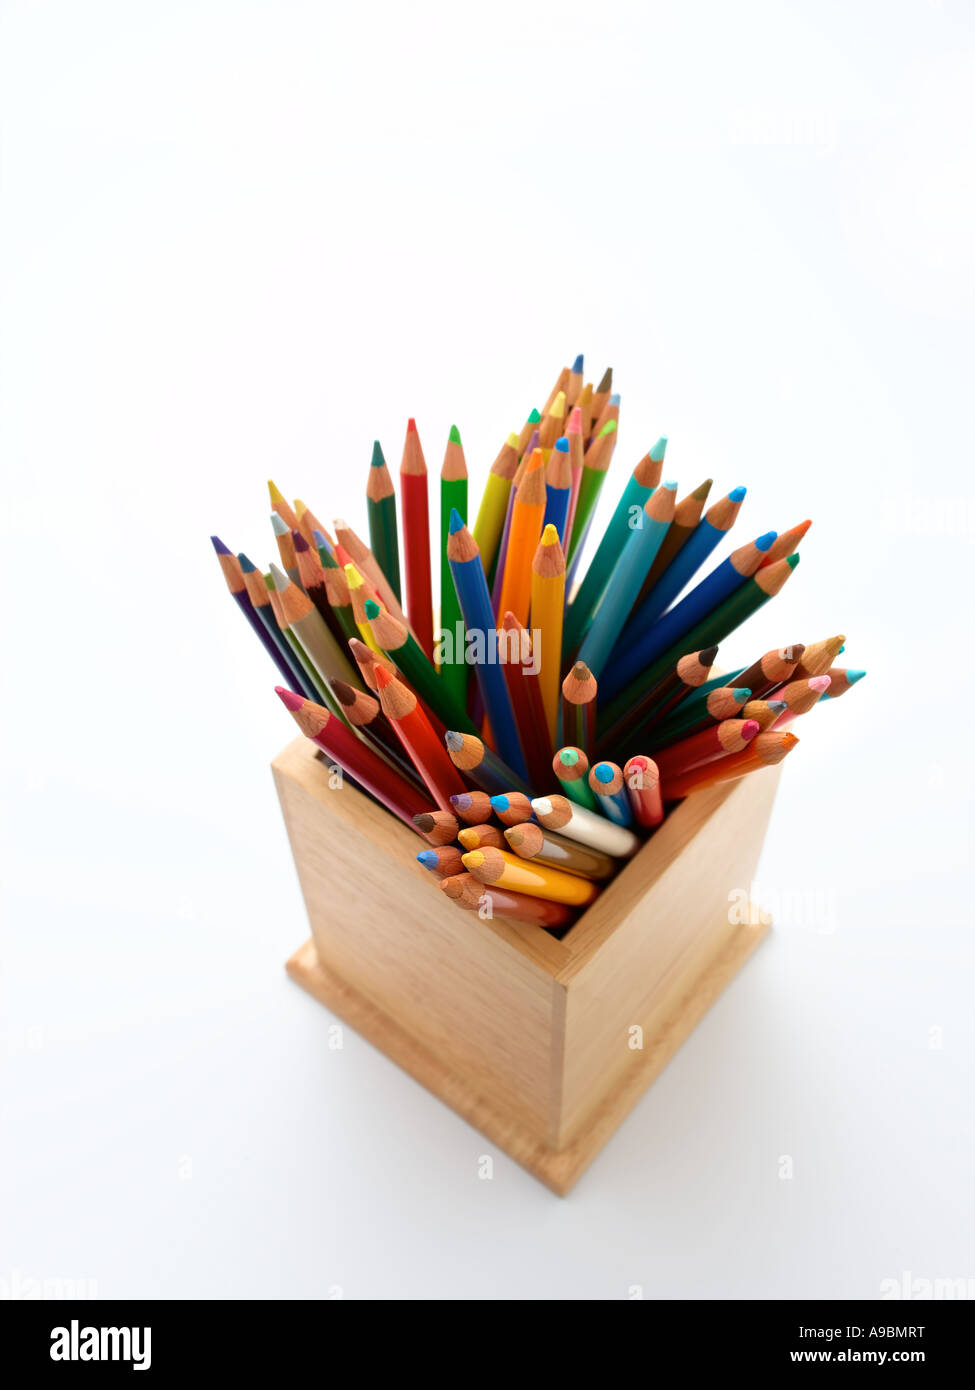 box of coloured pencils - Stock Image